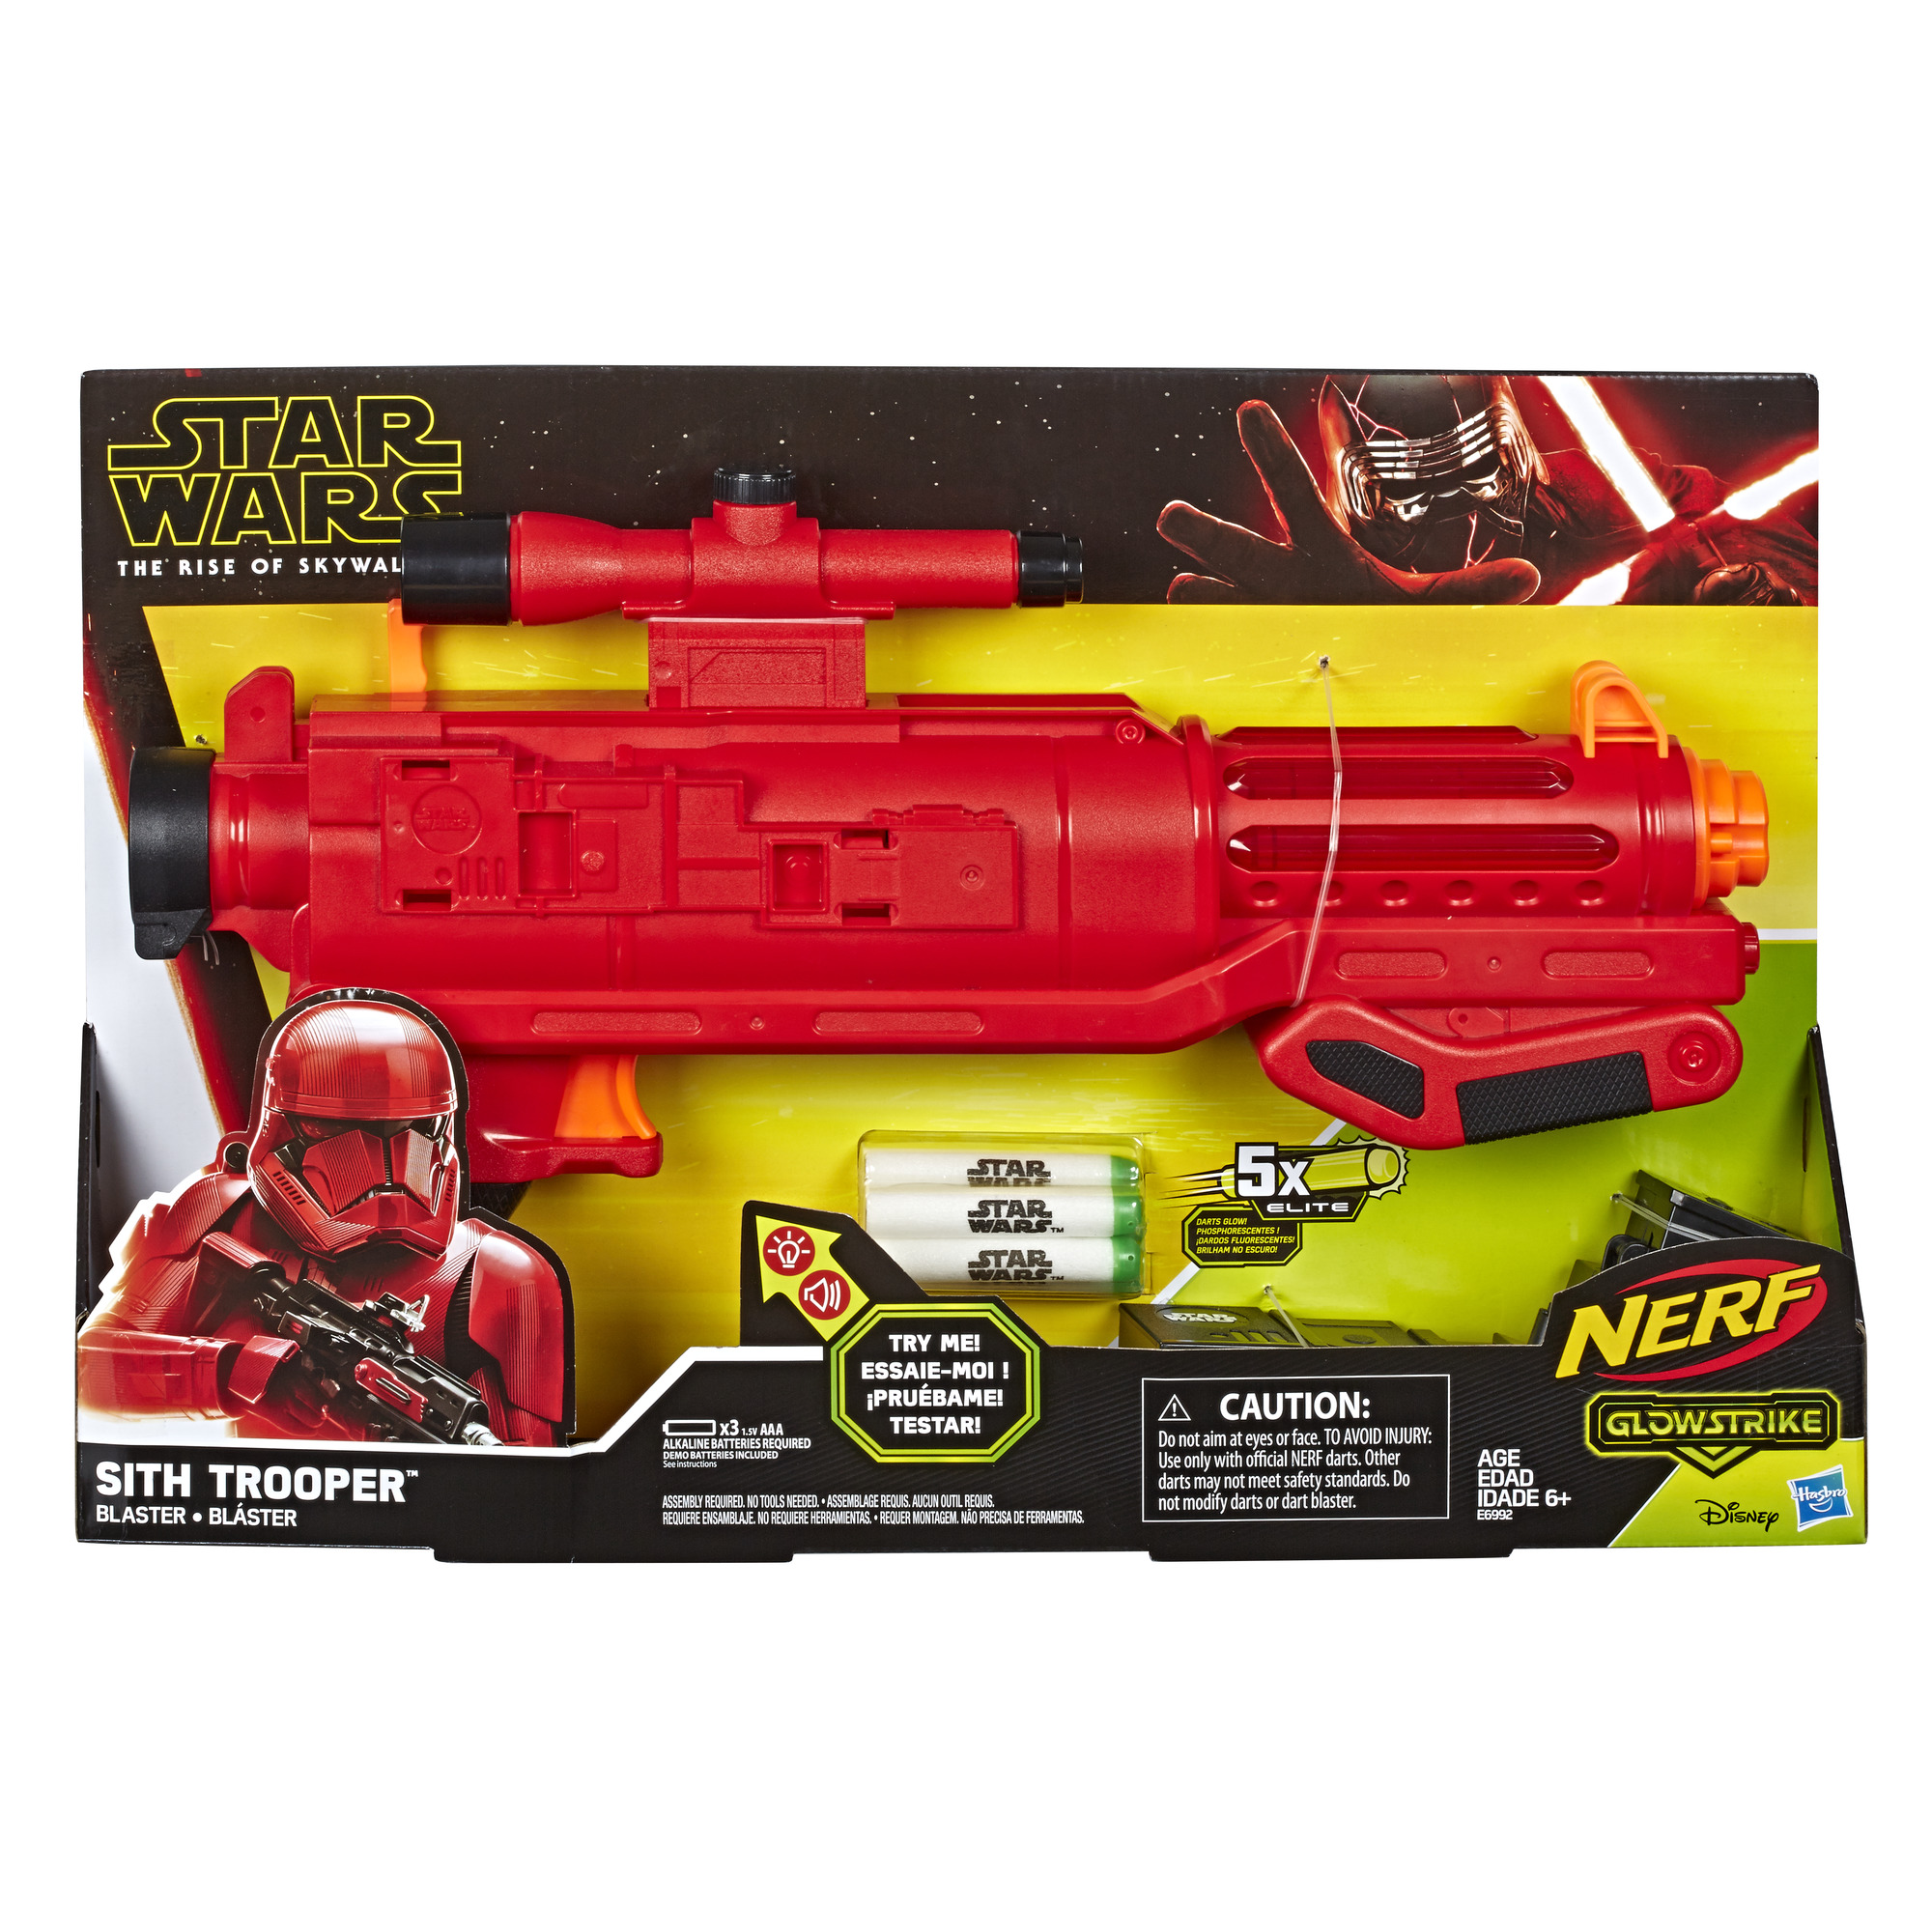 Nerf Star Wars Sith Trooper Blaster ONLY $19.98 (Reg $40)